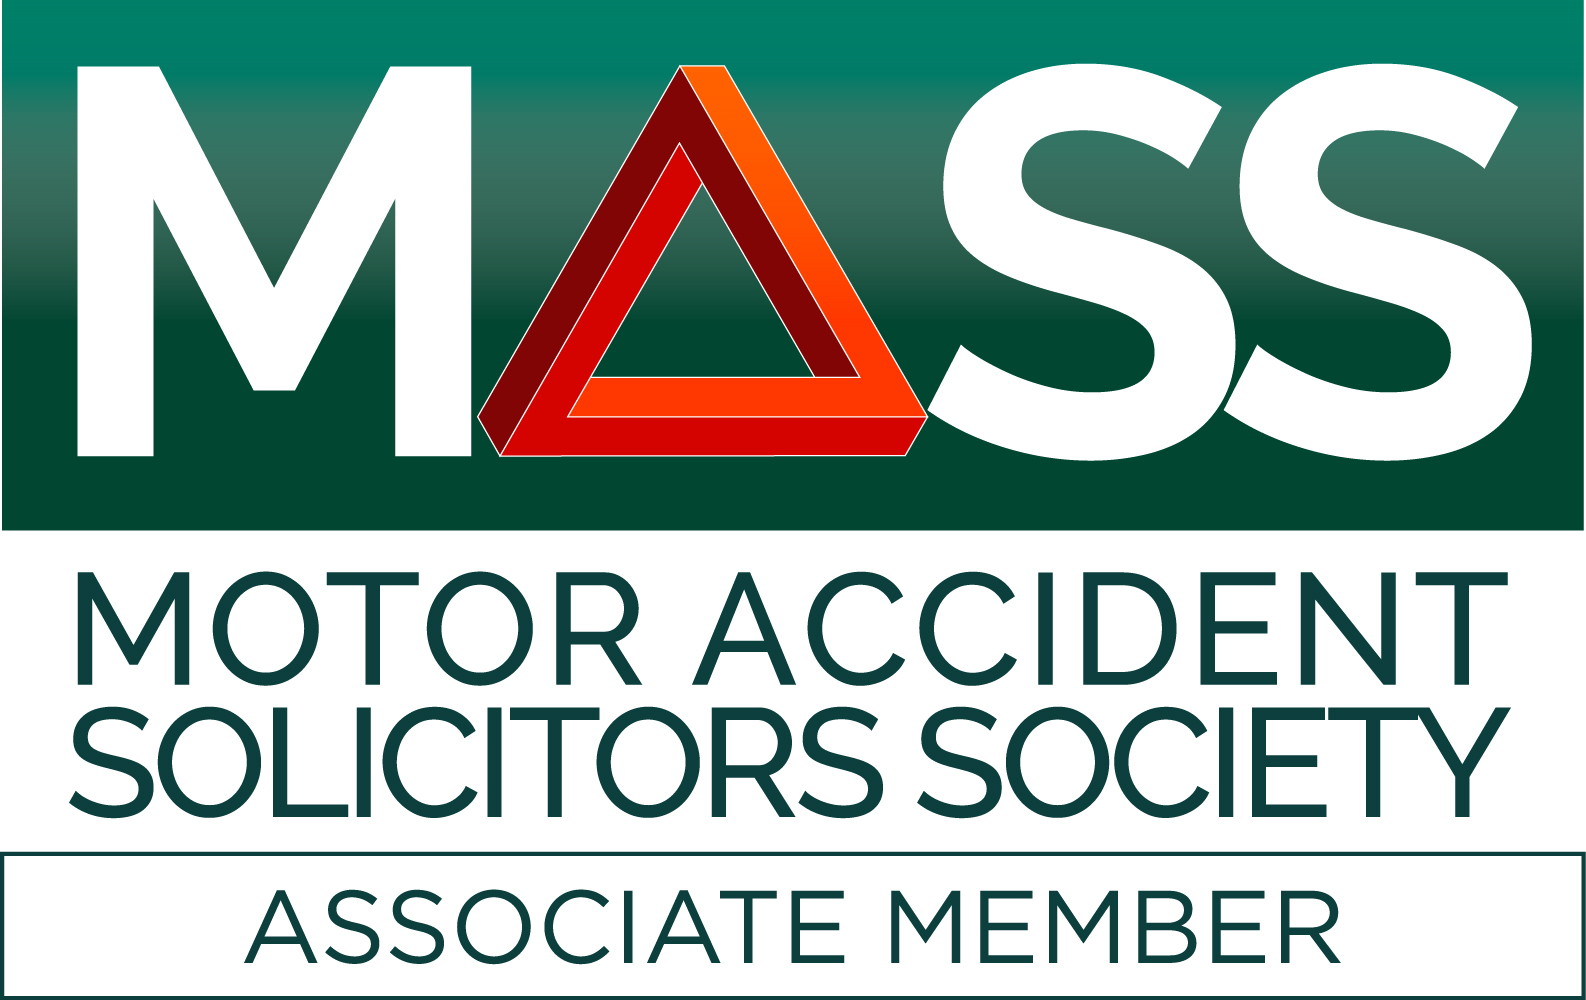 Robert Smith - MASS Associate Member